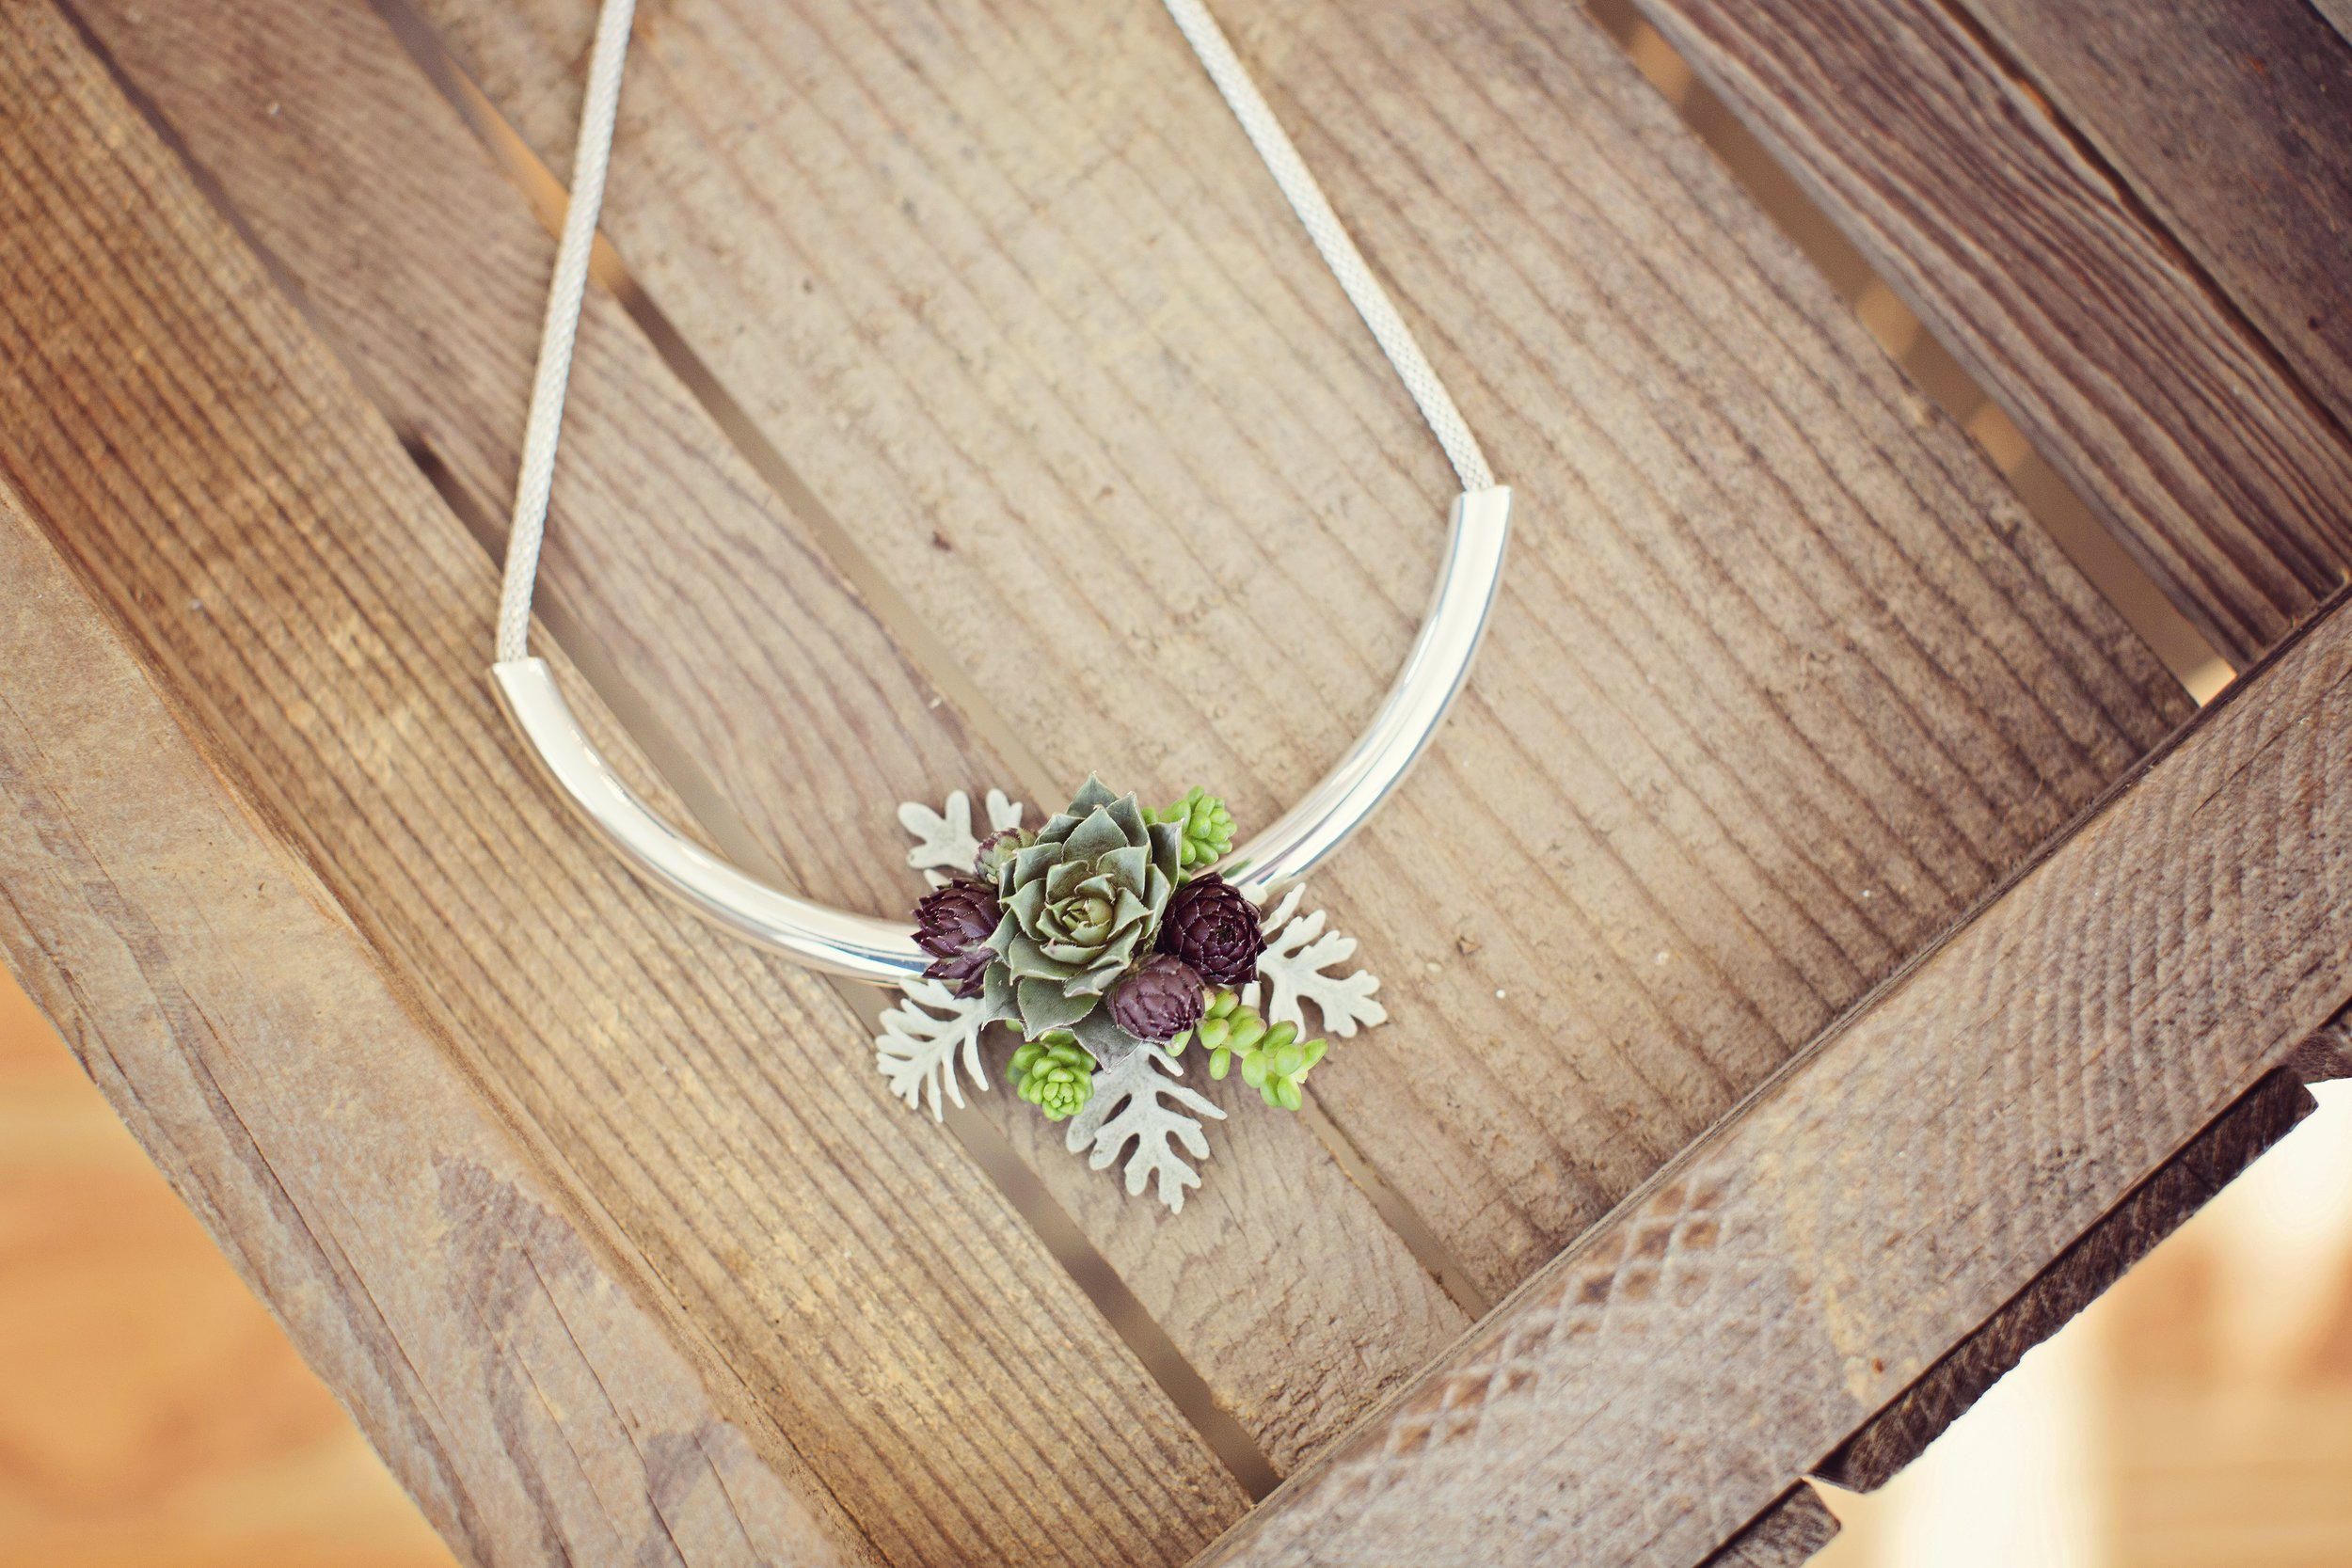 Custom Succulent Necklace $50   Floral necklace custom designed by Westvirjeni with tiny succulents that can last up to 6 months. Wear and then plant to enjoy for years to come.